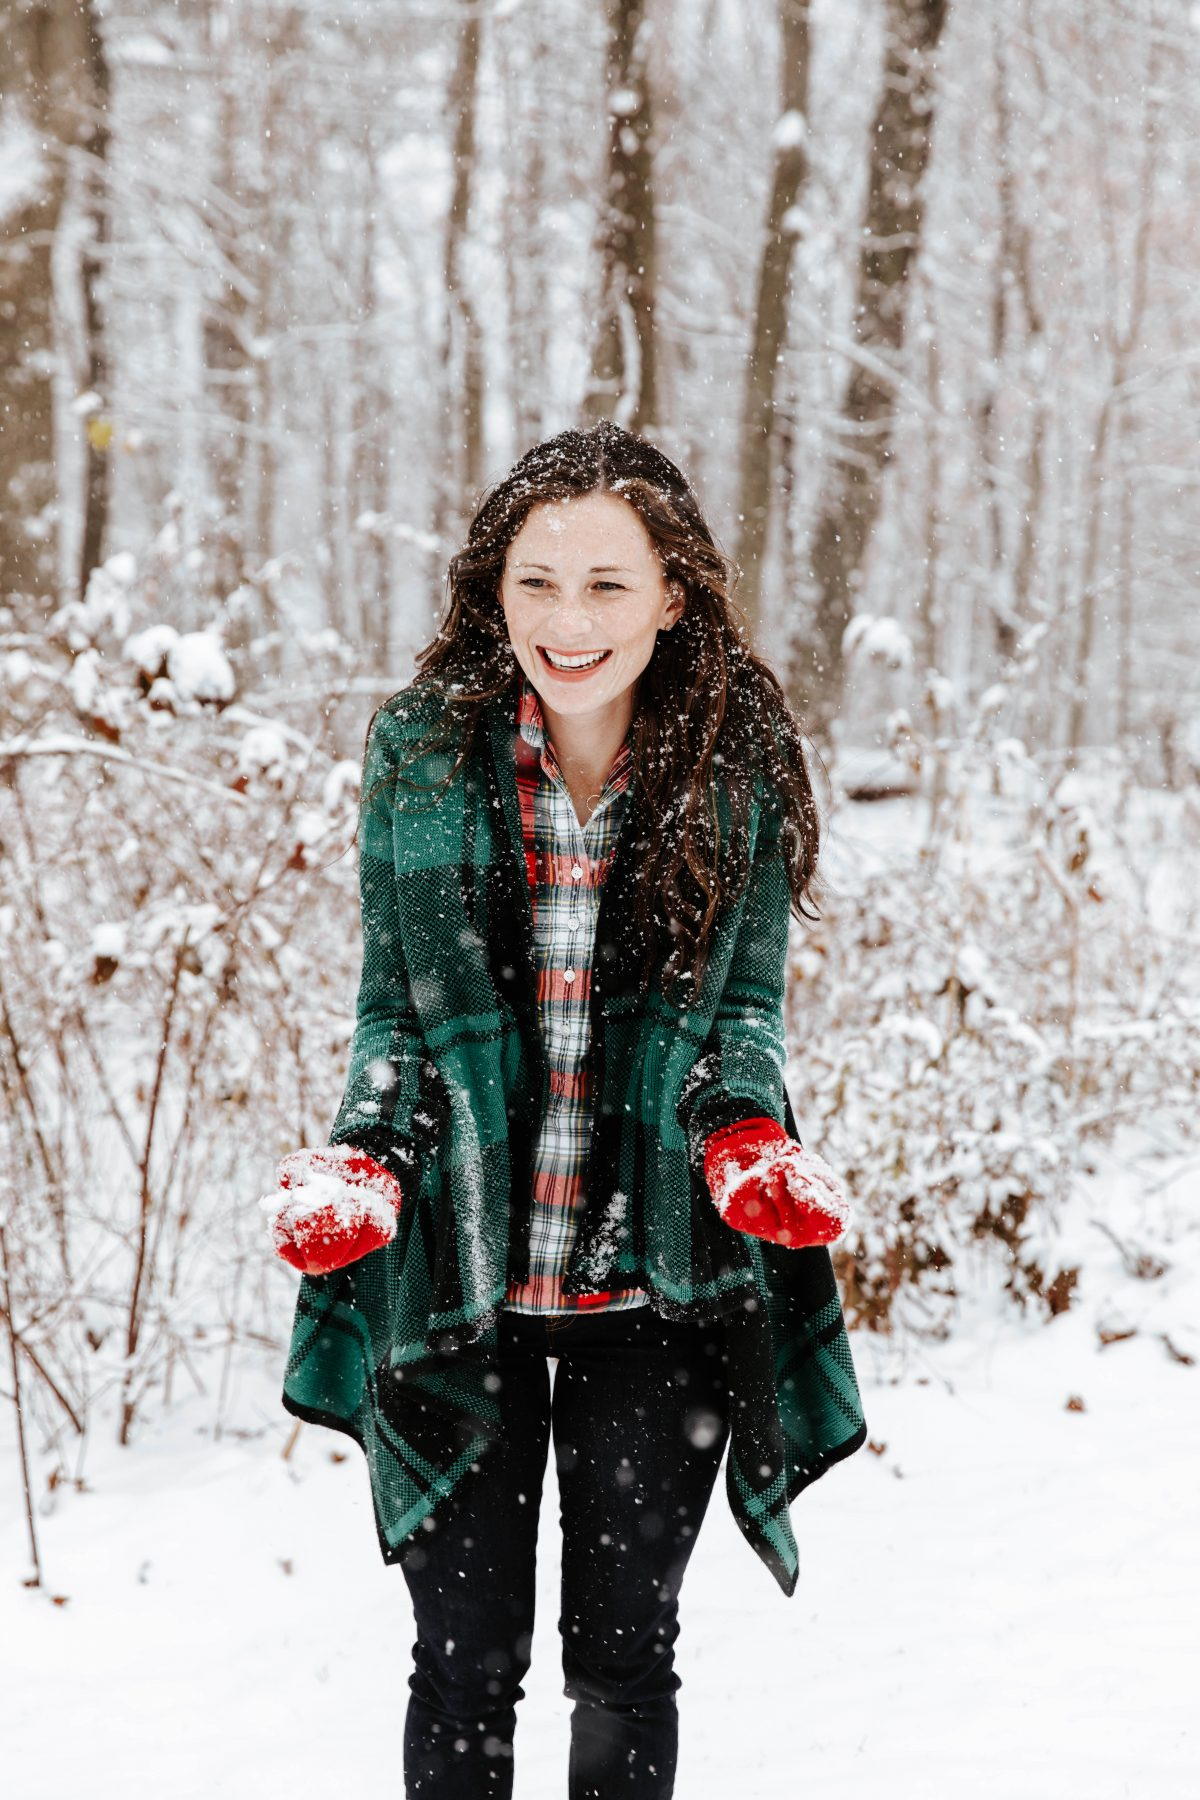 woman smiling and catching snowflakes in the middle of a snowstorm wearing a green and black plaid shawl over a red plaid shirt